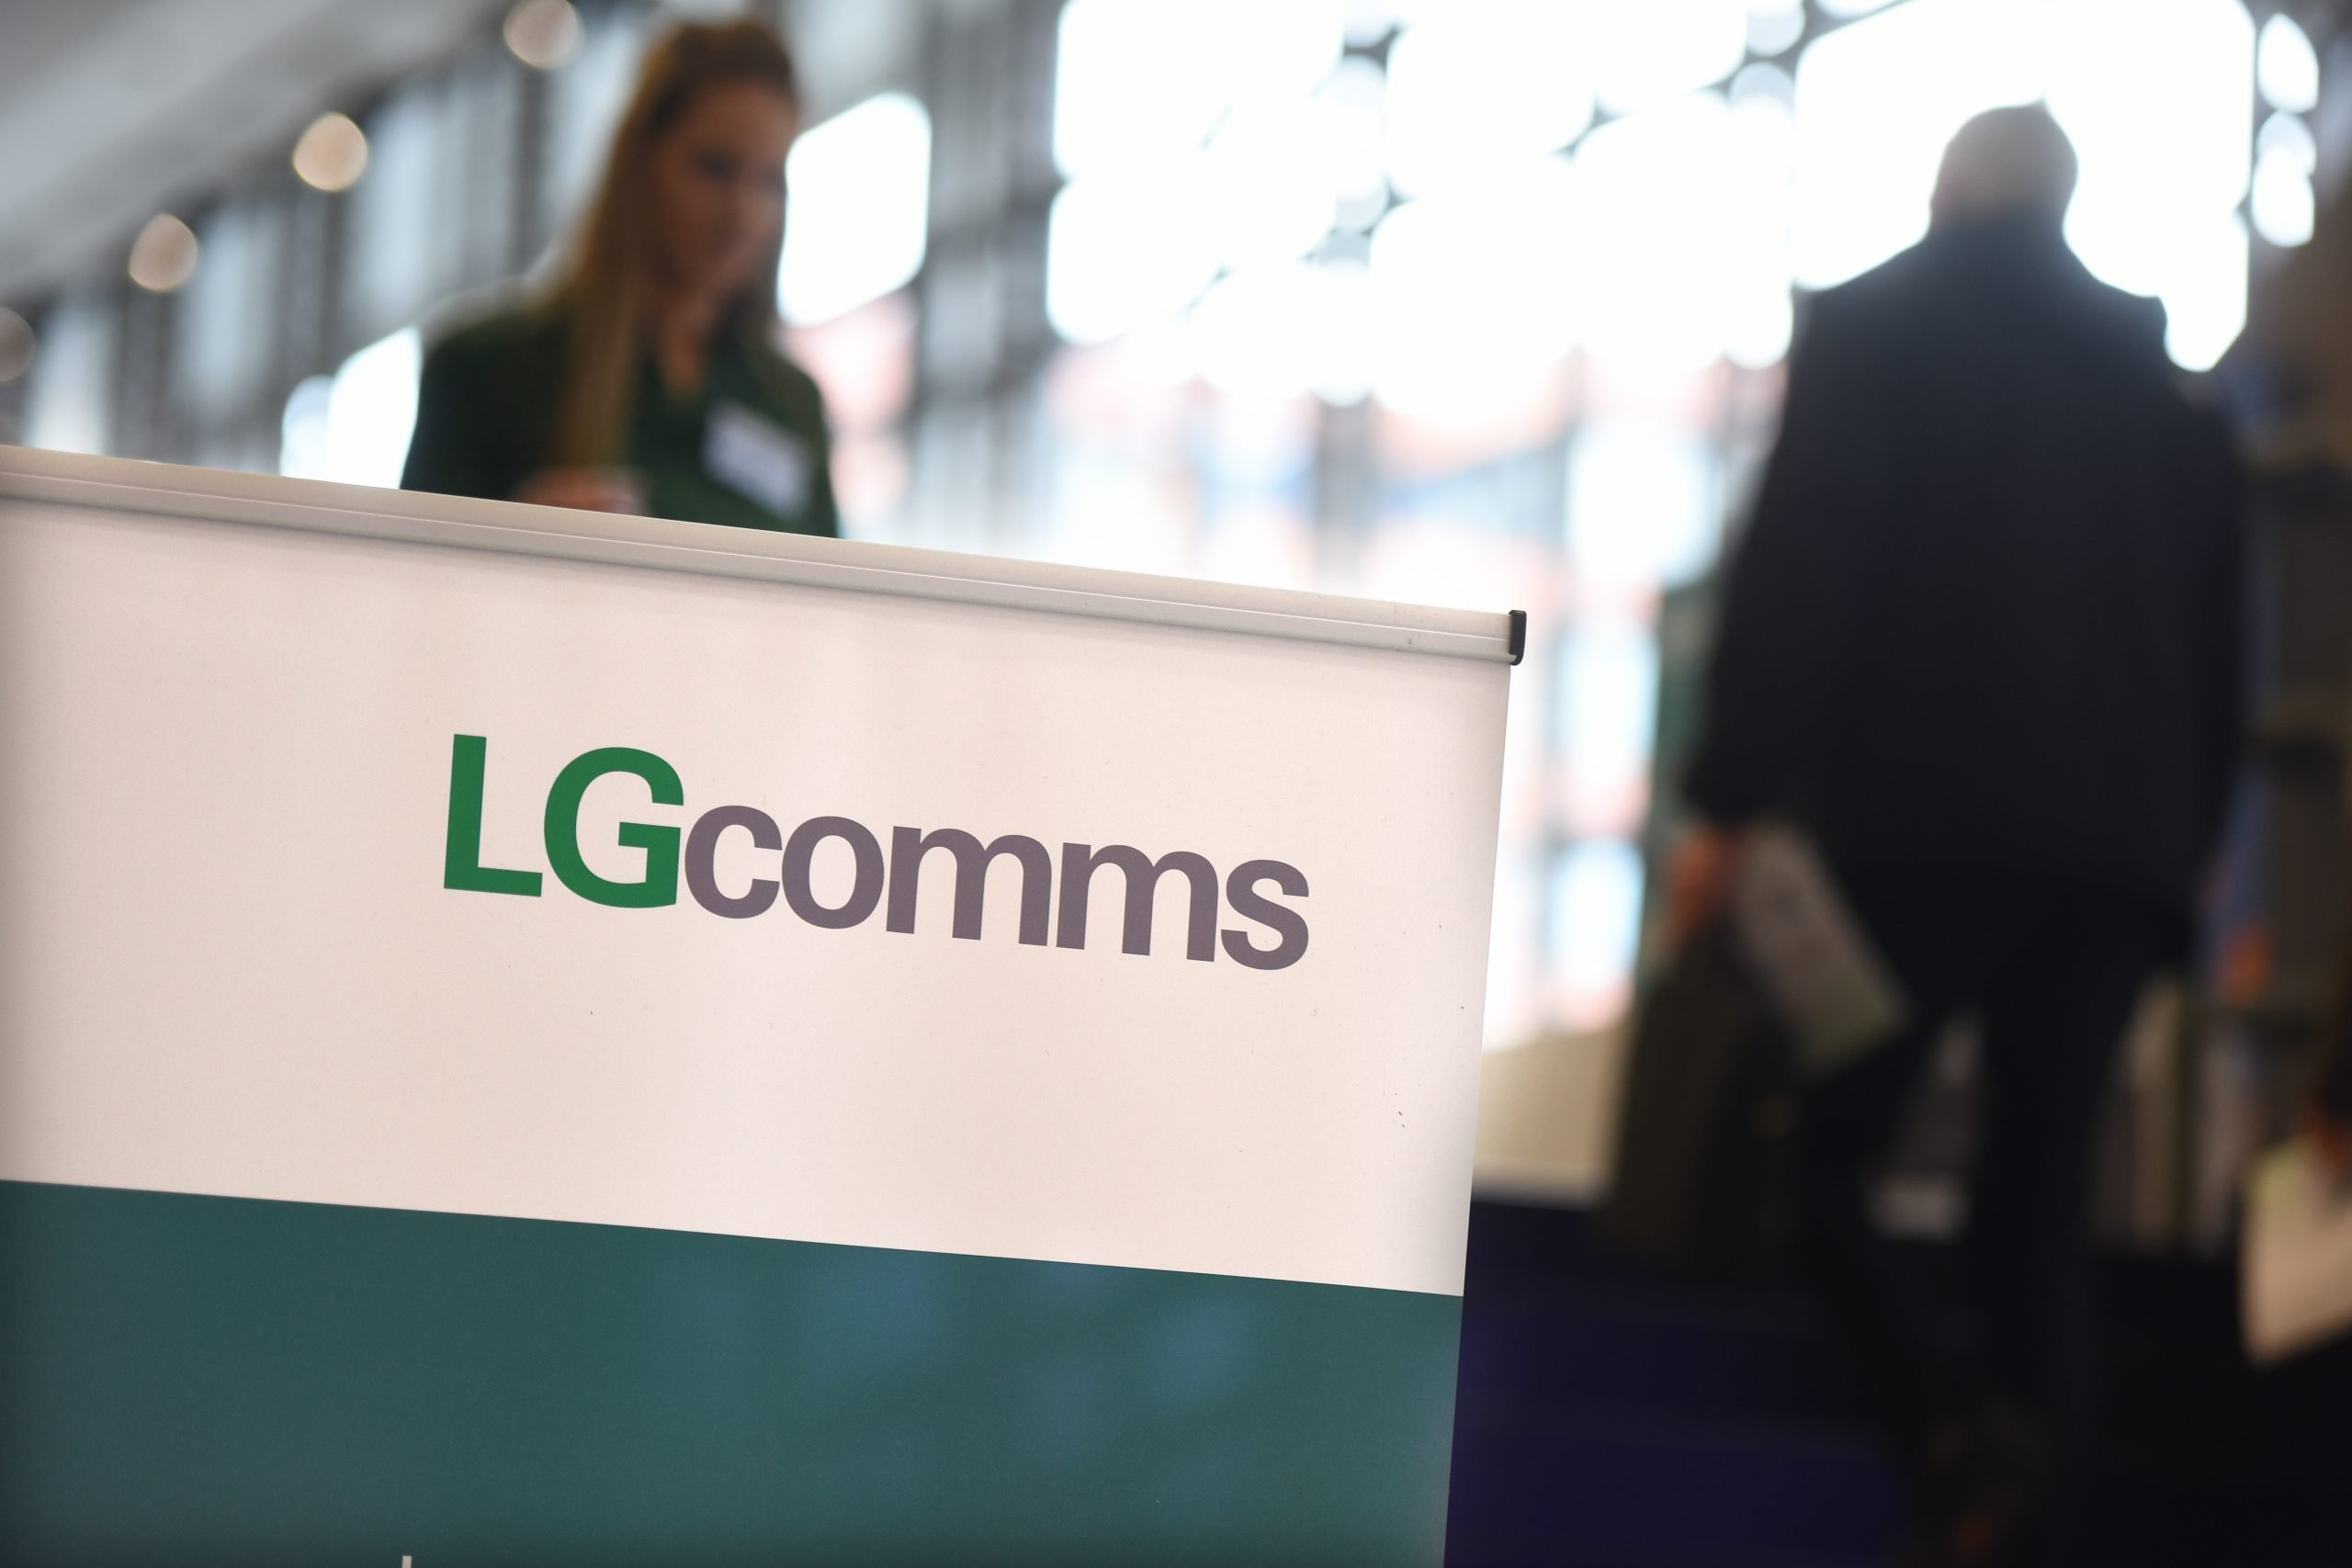 A banner with the LGcomms logo